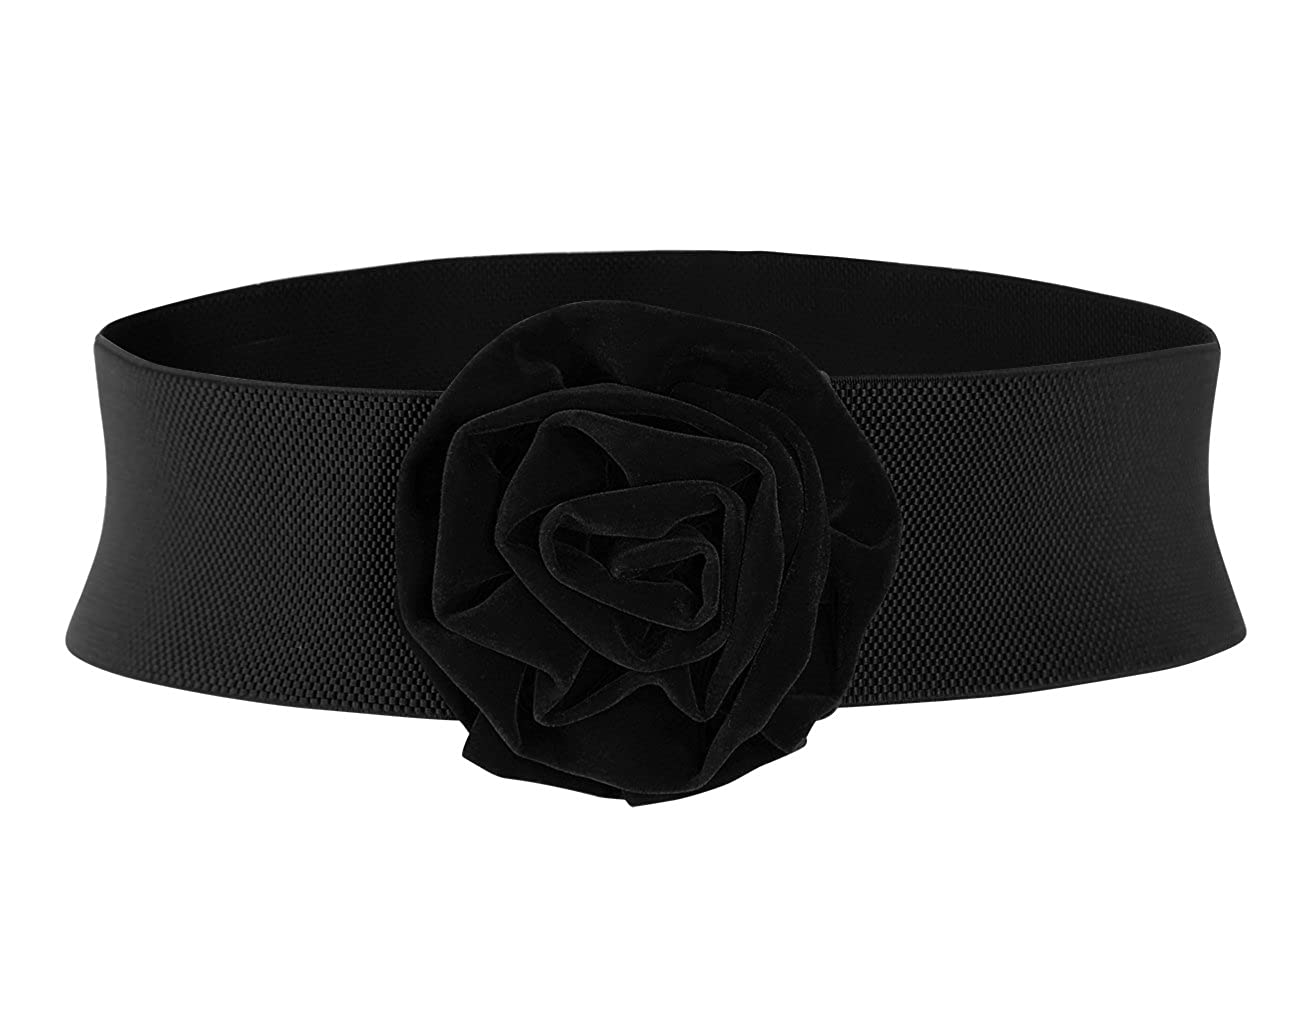 Vintage Wide Belts, Cinch Belts 40s, 50s Belts MUXXN Womens Vintage Flower Wide Elastic Stretchy Buckle Cinch Belt for Dress $12.89 AT vintagedancer.com